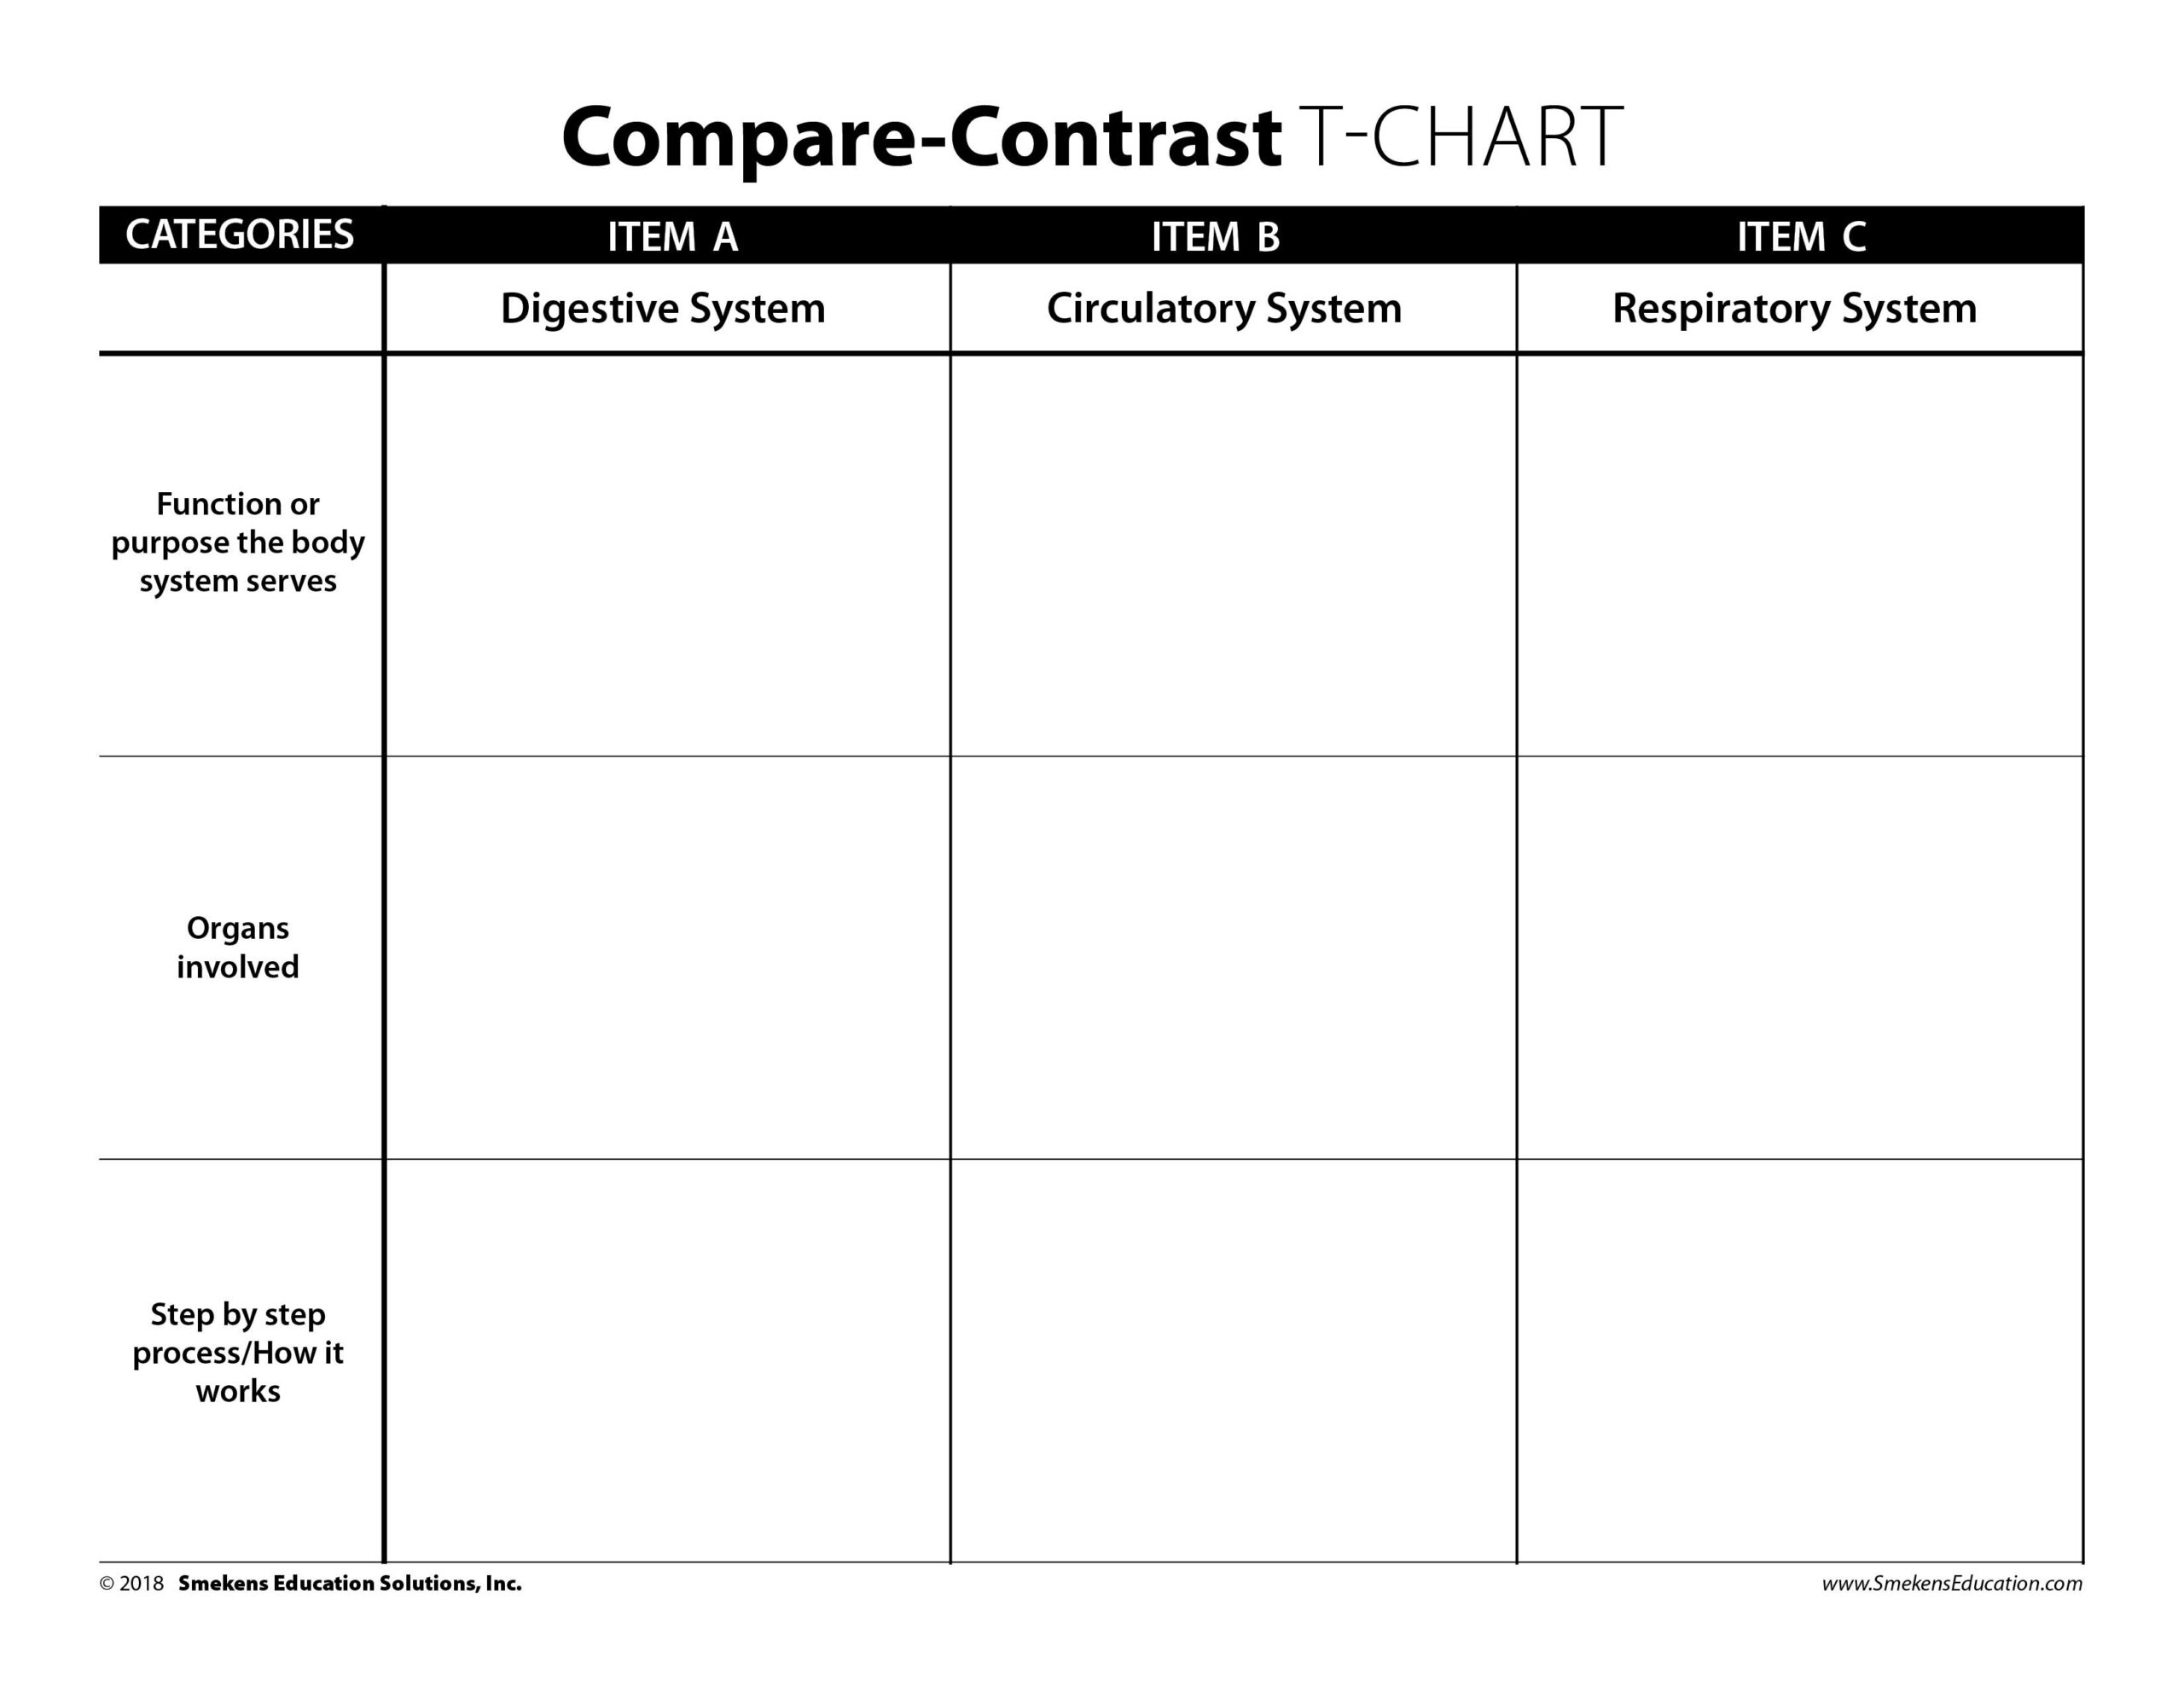 Compare-Contrast T-Chart Body Systems 3 x 3